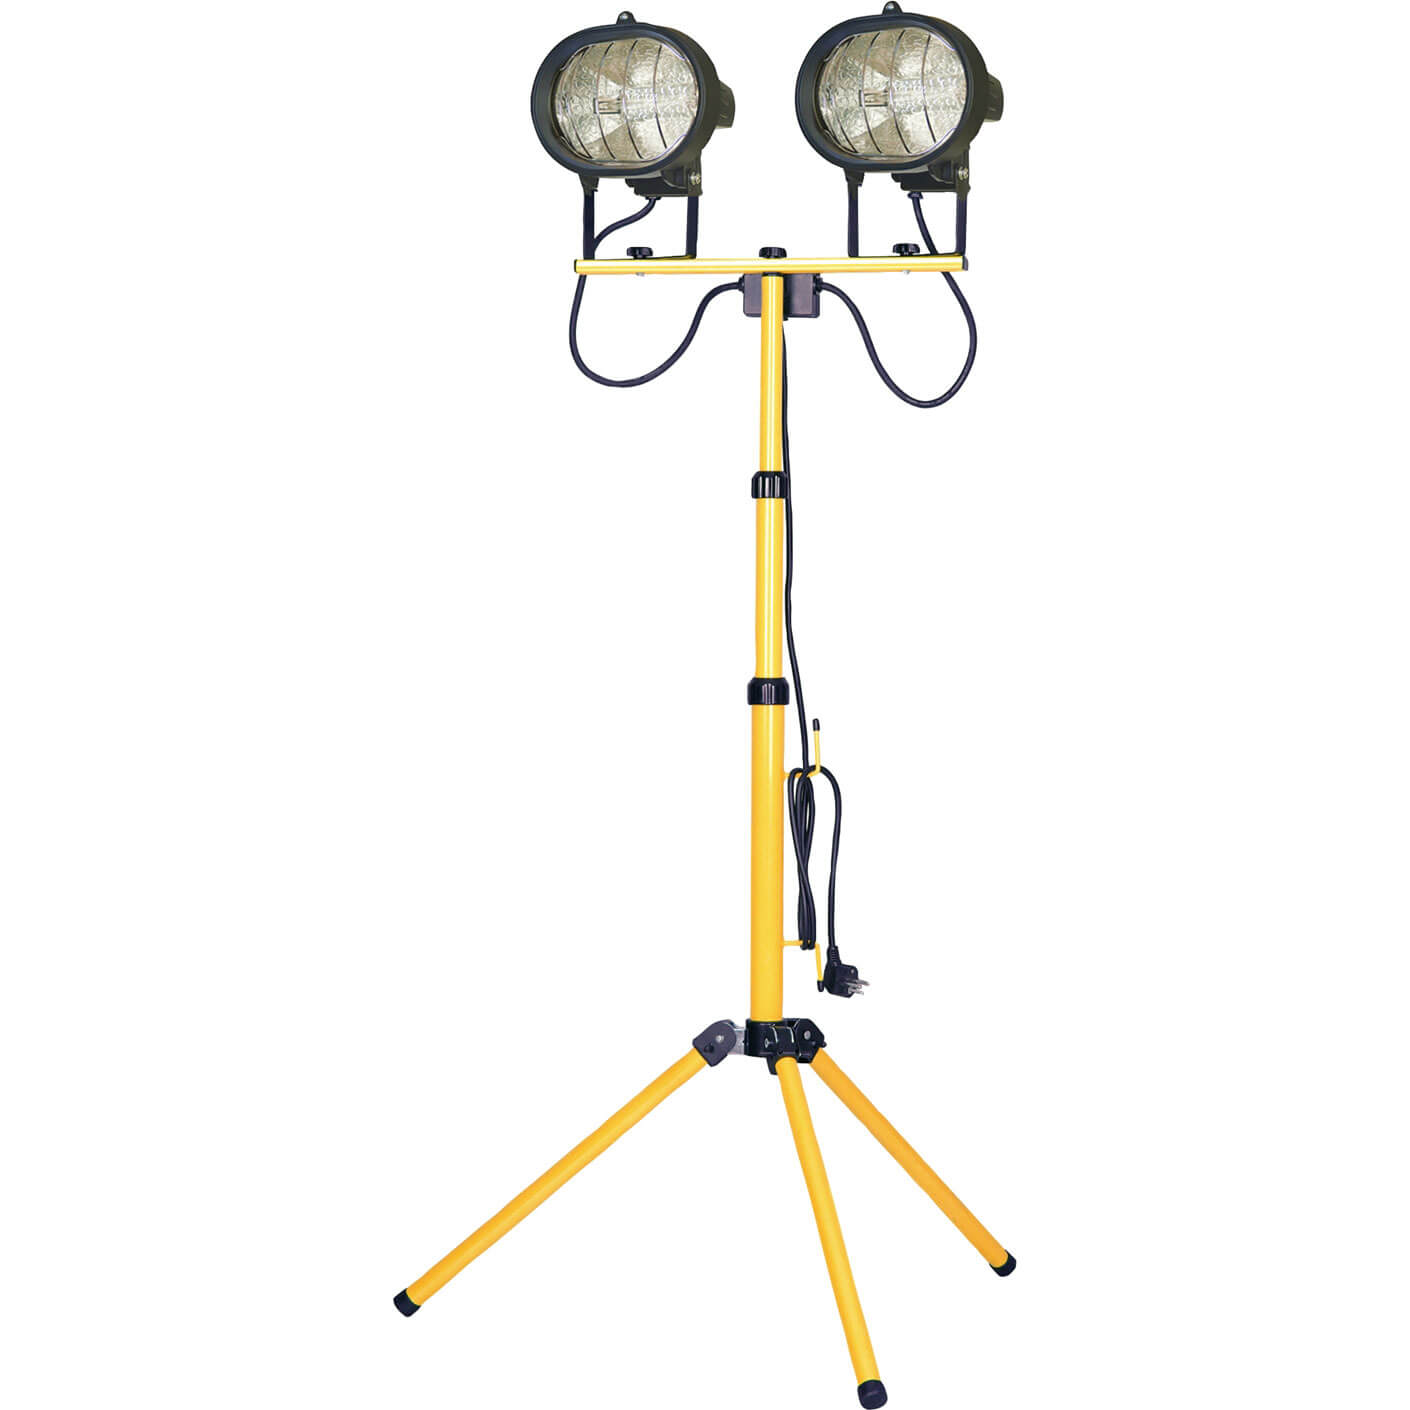 Image of Faithfull 1000W Halogen Twin Site Light 240v